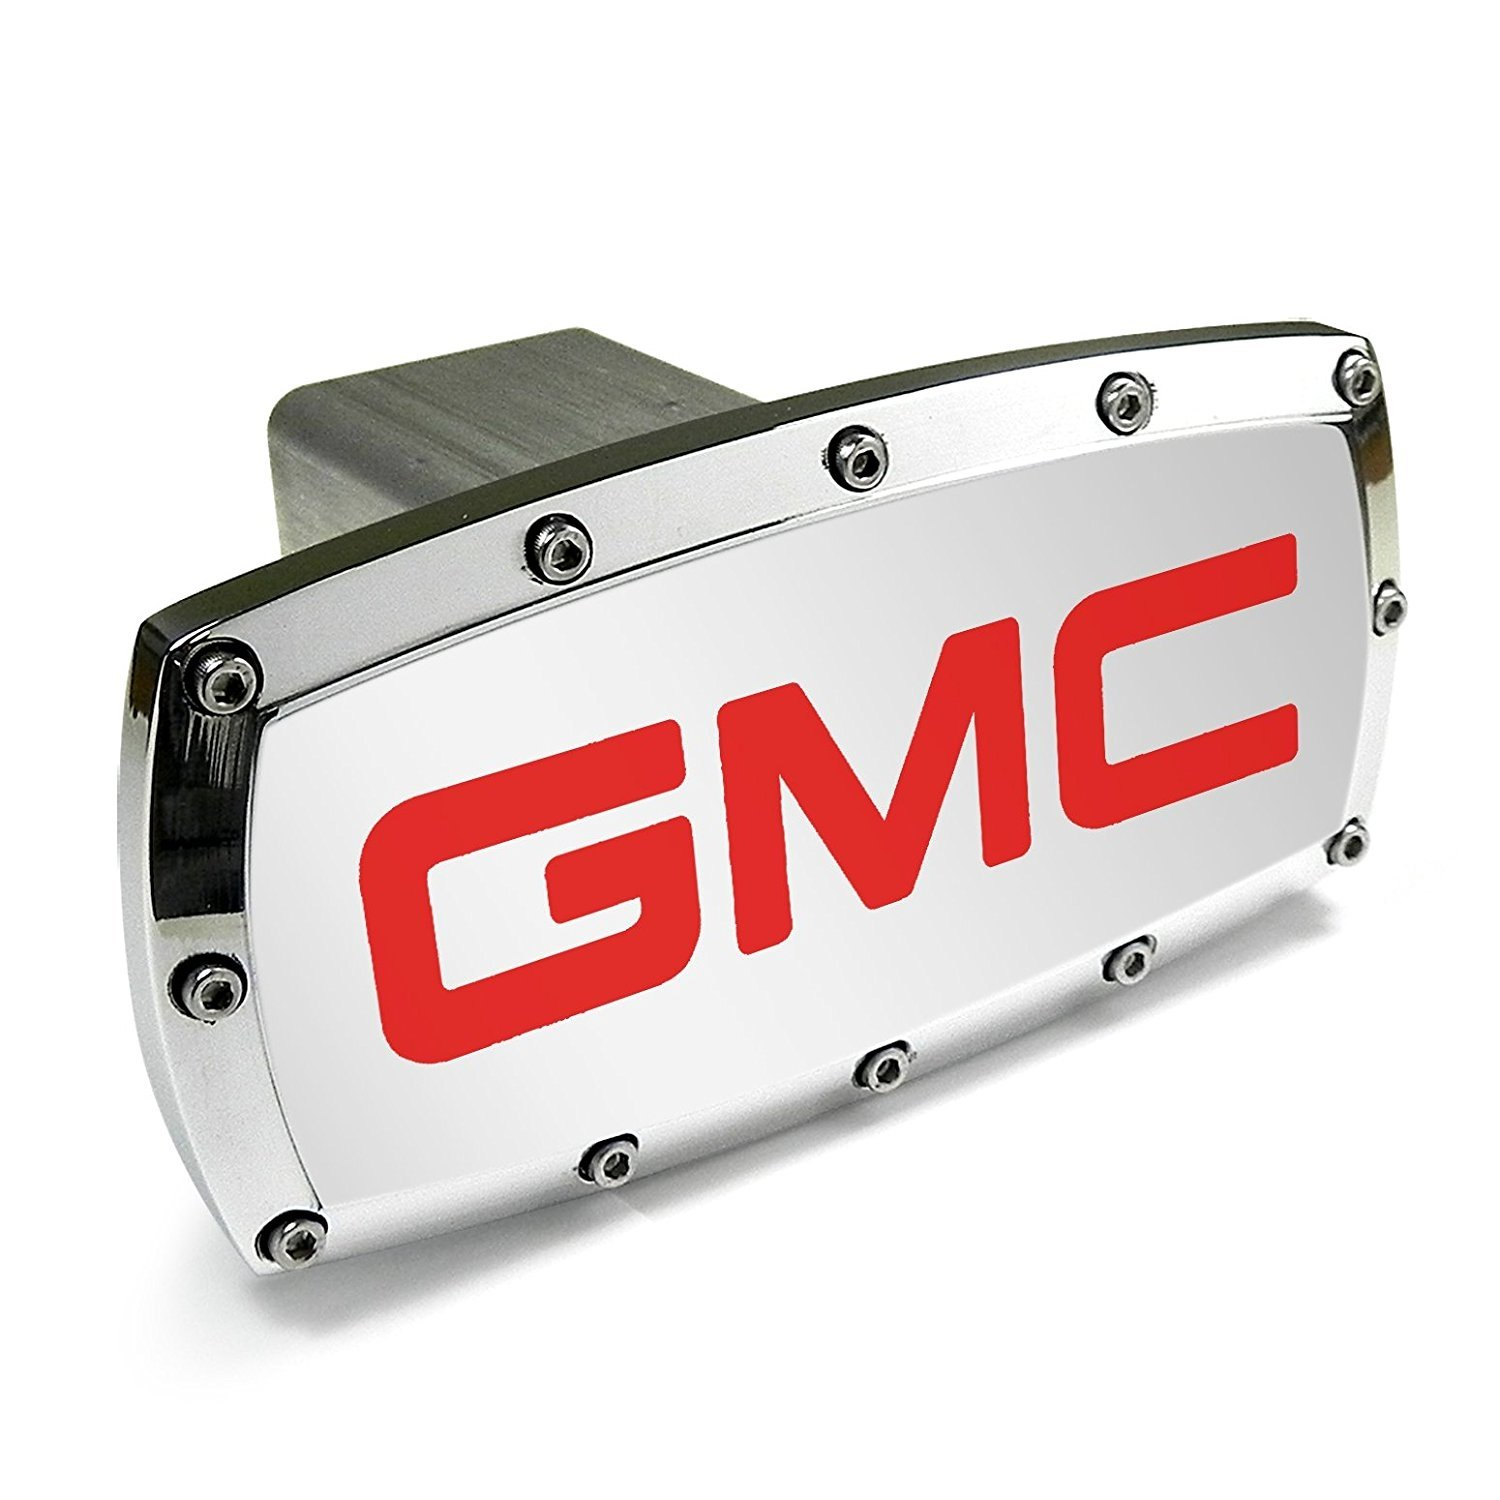 Jewelry For Cars for CarBeyondStore GMC Sierra Black Aluminum Plate Insert on ABS Plastic 2 inch Tow Hitch Cover